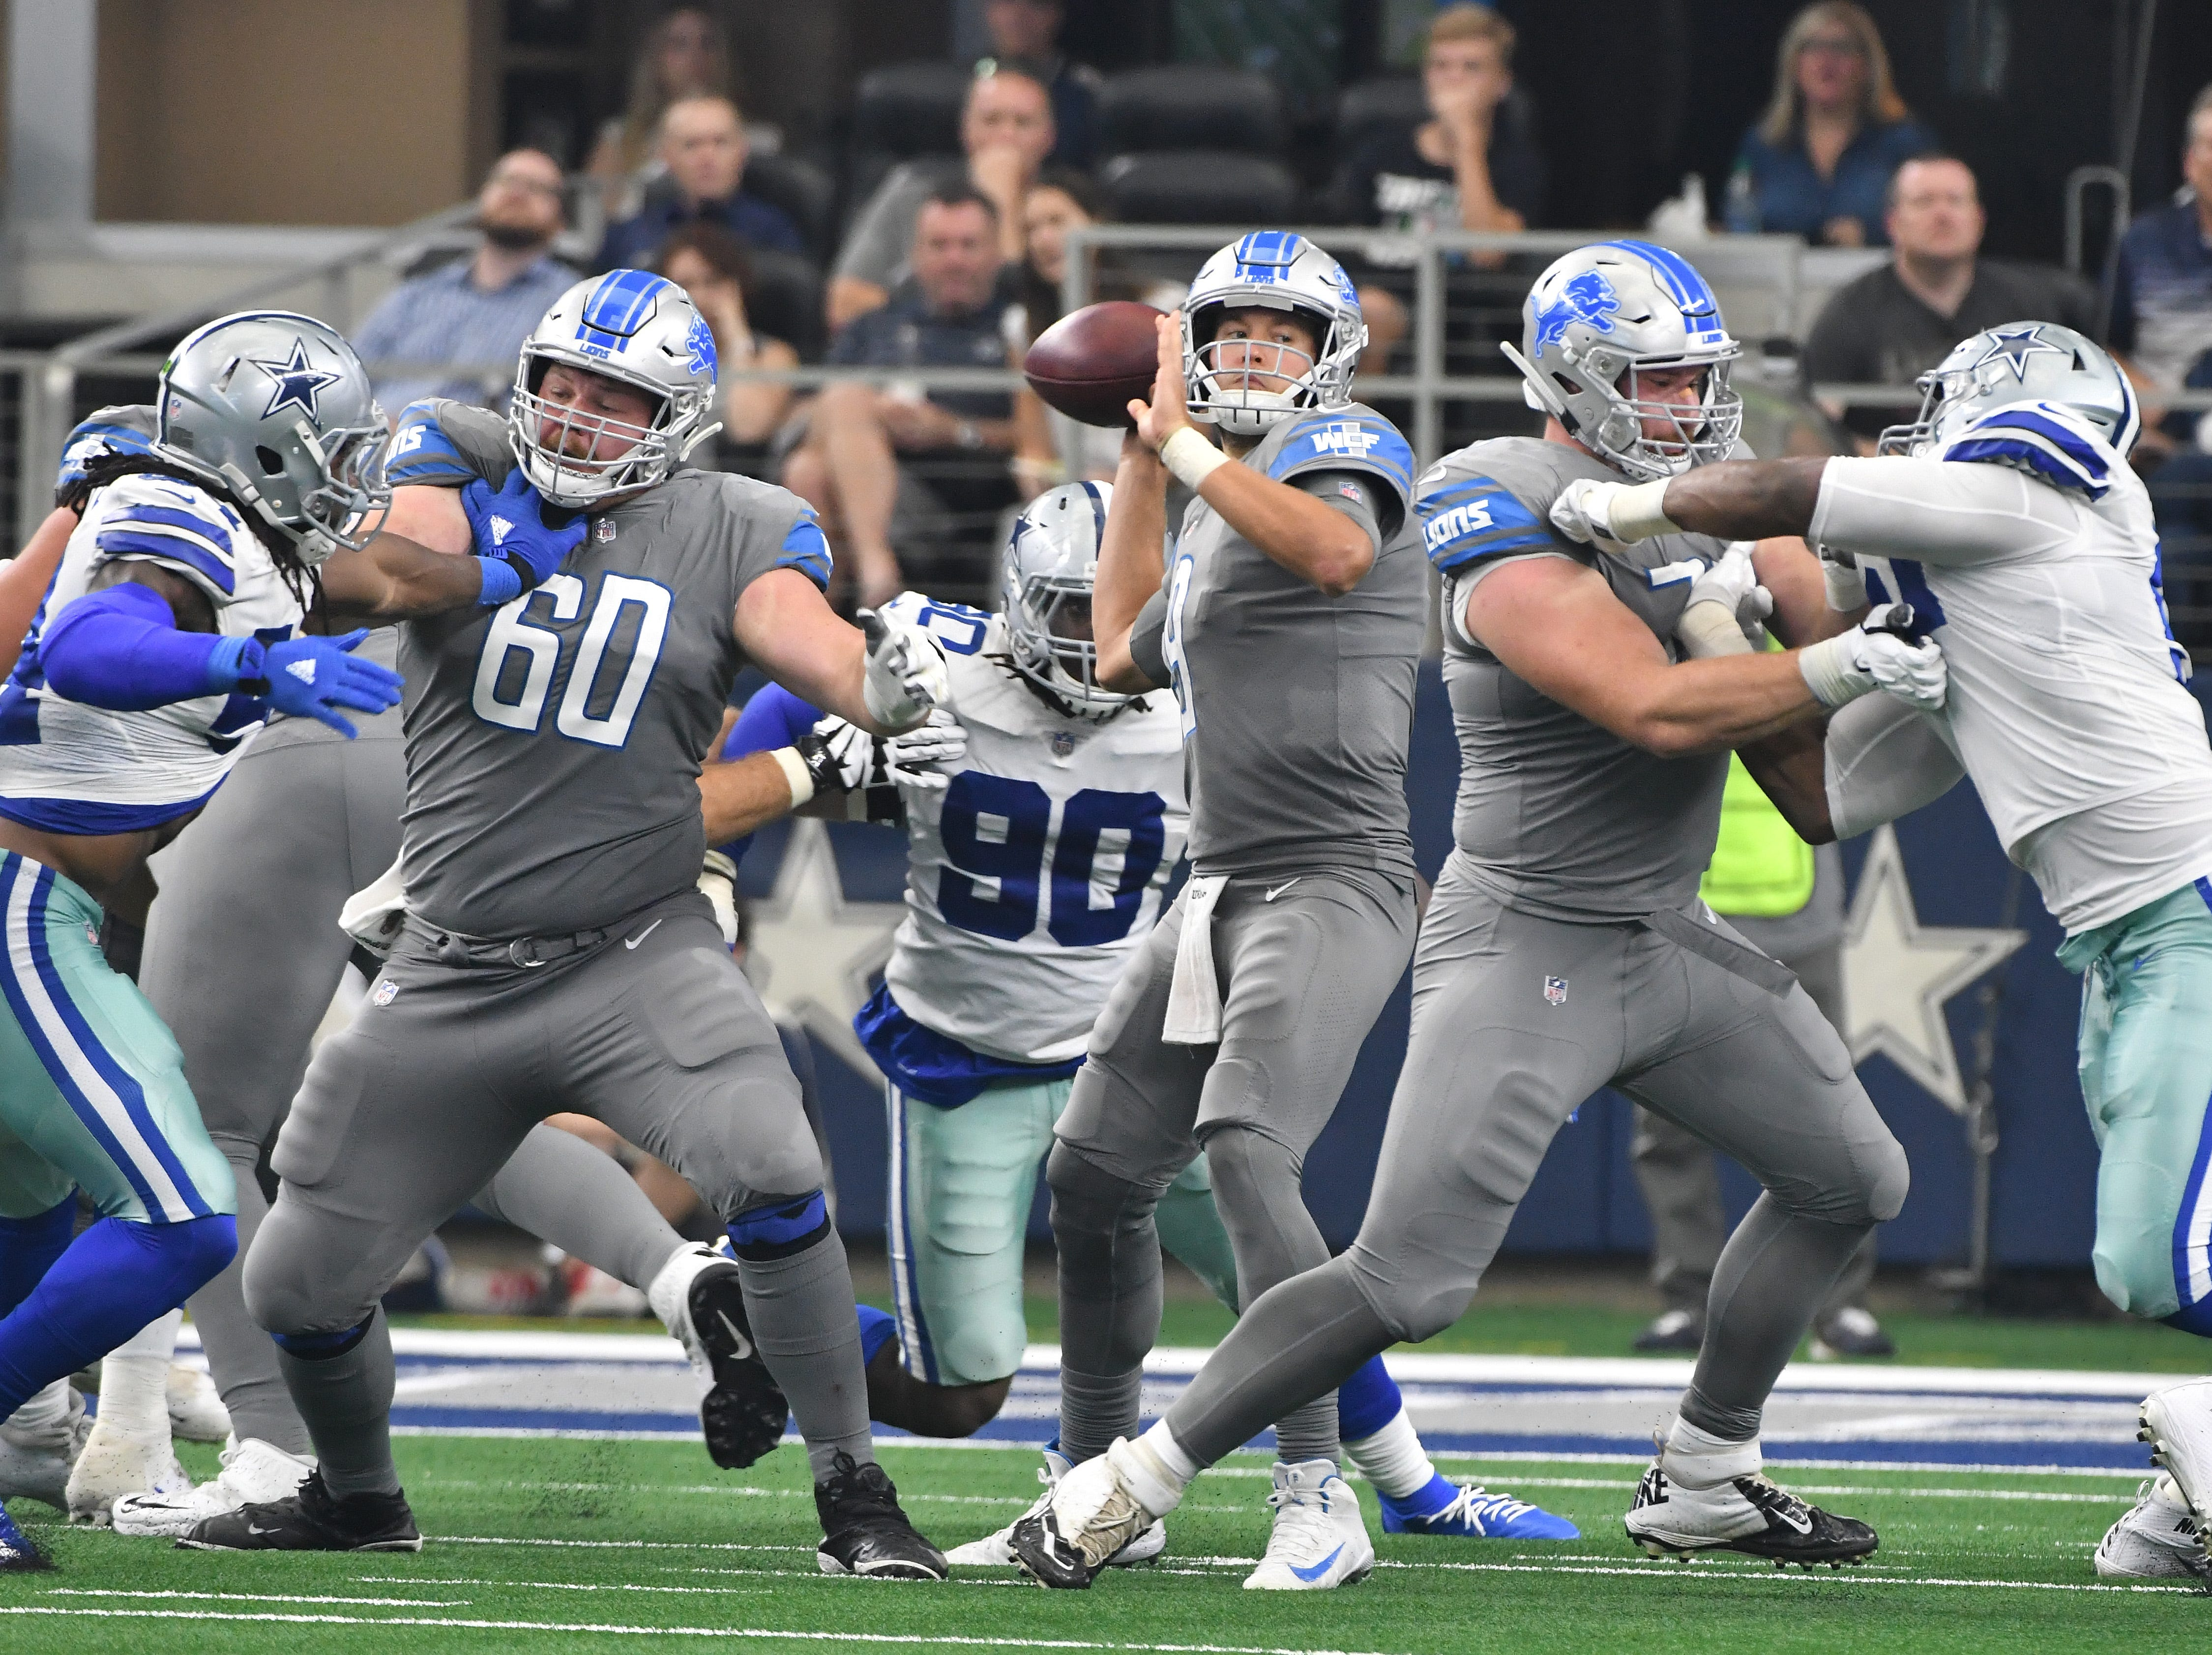 Lions quarterback Matthew Stafford looks for an open receiver as the offensive line works including Lions' Graham Glasgow and Frank Ragnow in the third quarter; unfortunately Stafford was sacked on this play.